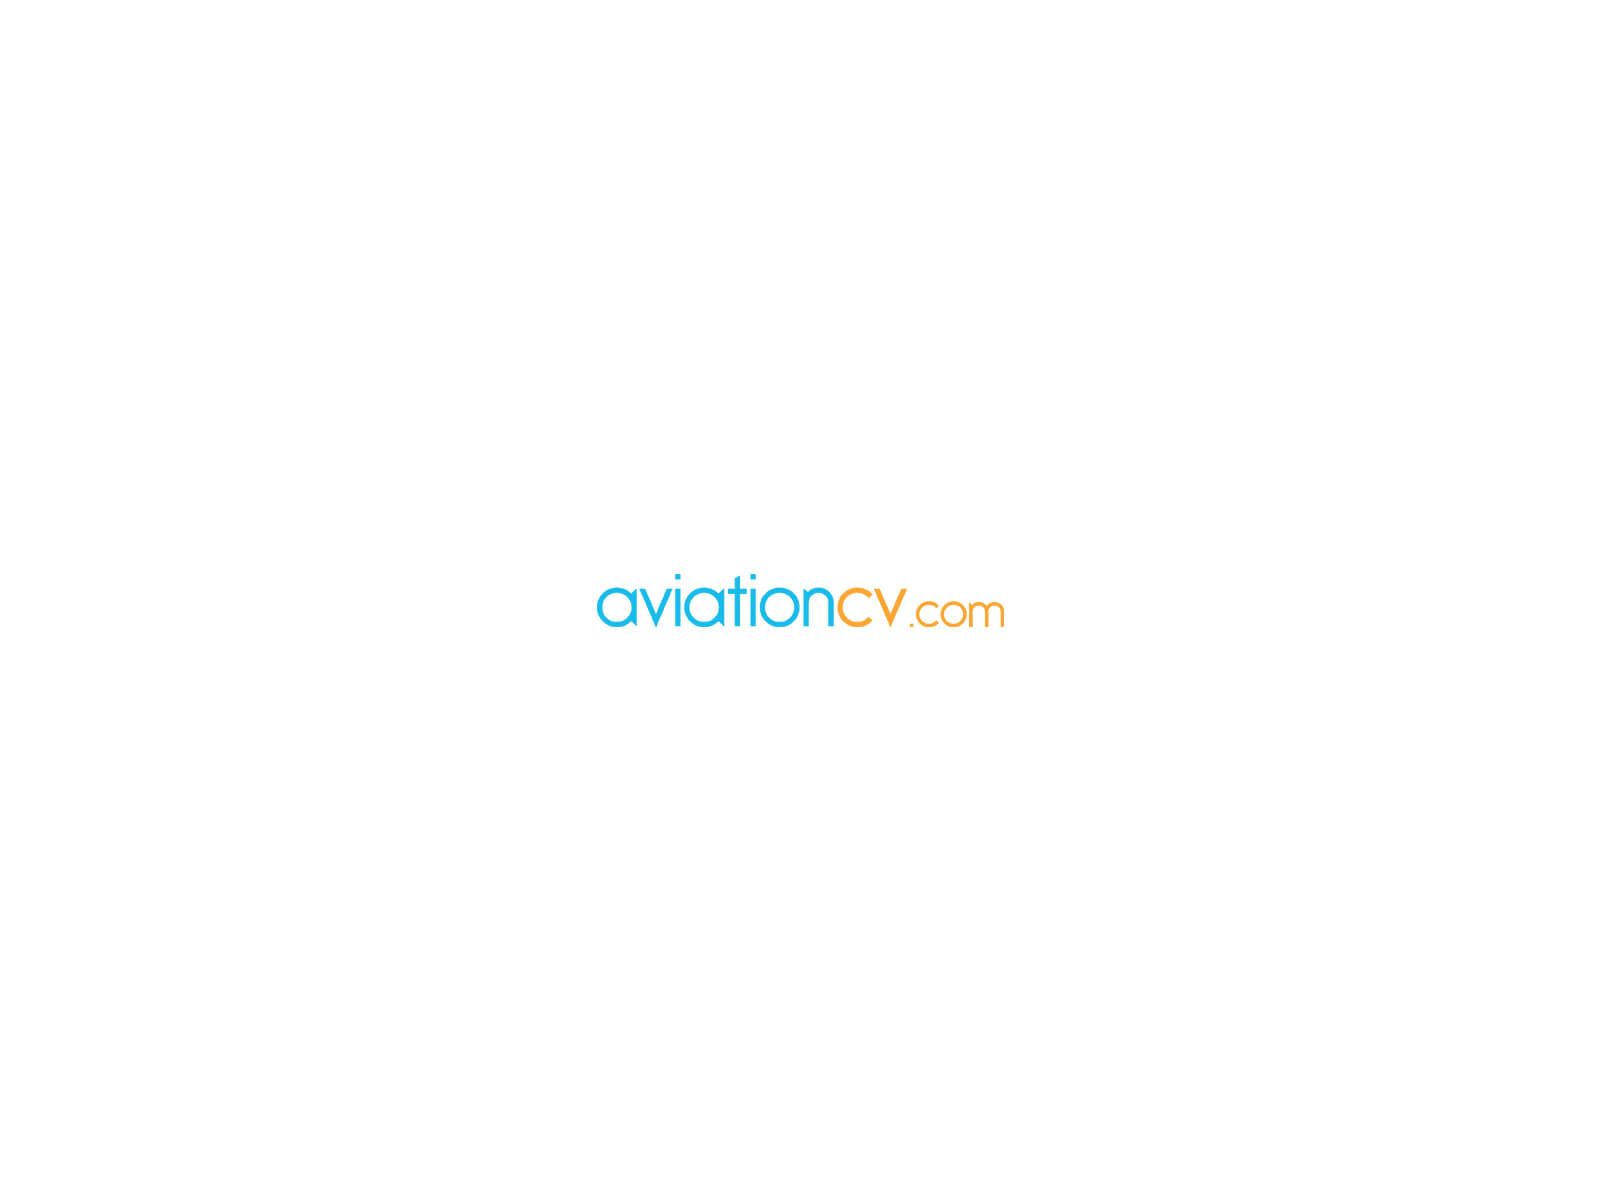 Logotype Aviation CV | Corporate style | WinWin